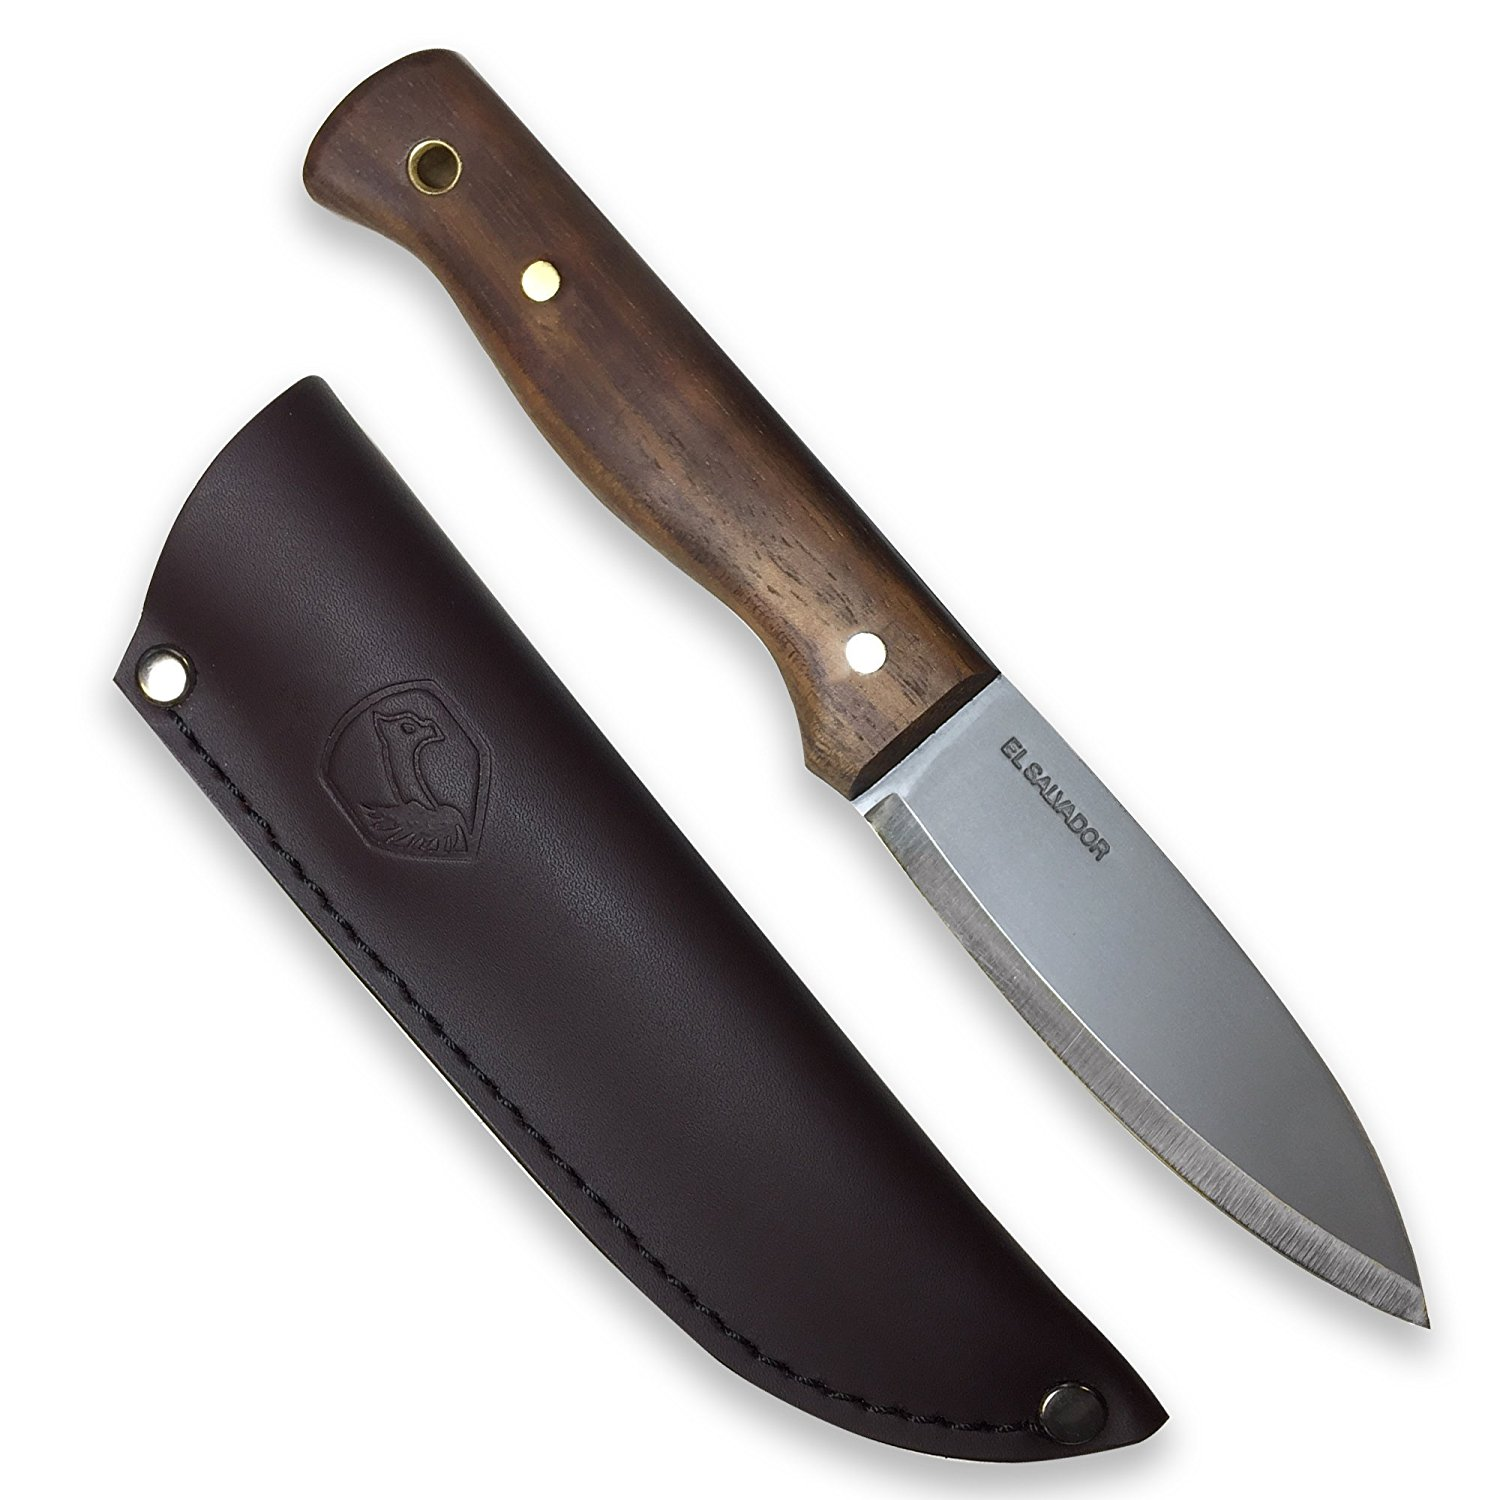 Condor Bushslore Survival Knife w/LS Hardwood Handle